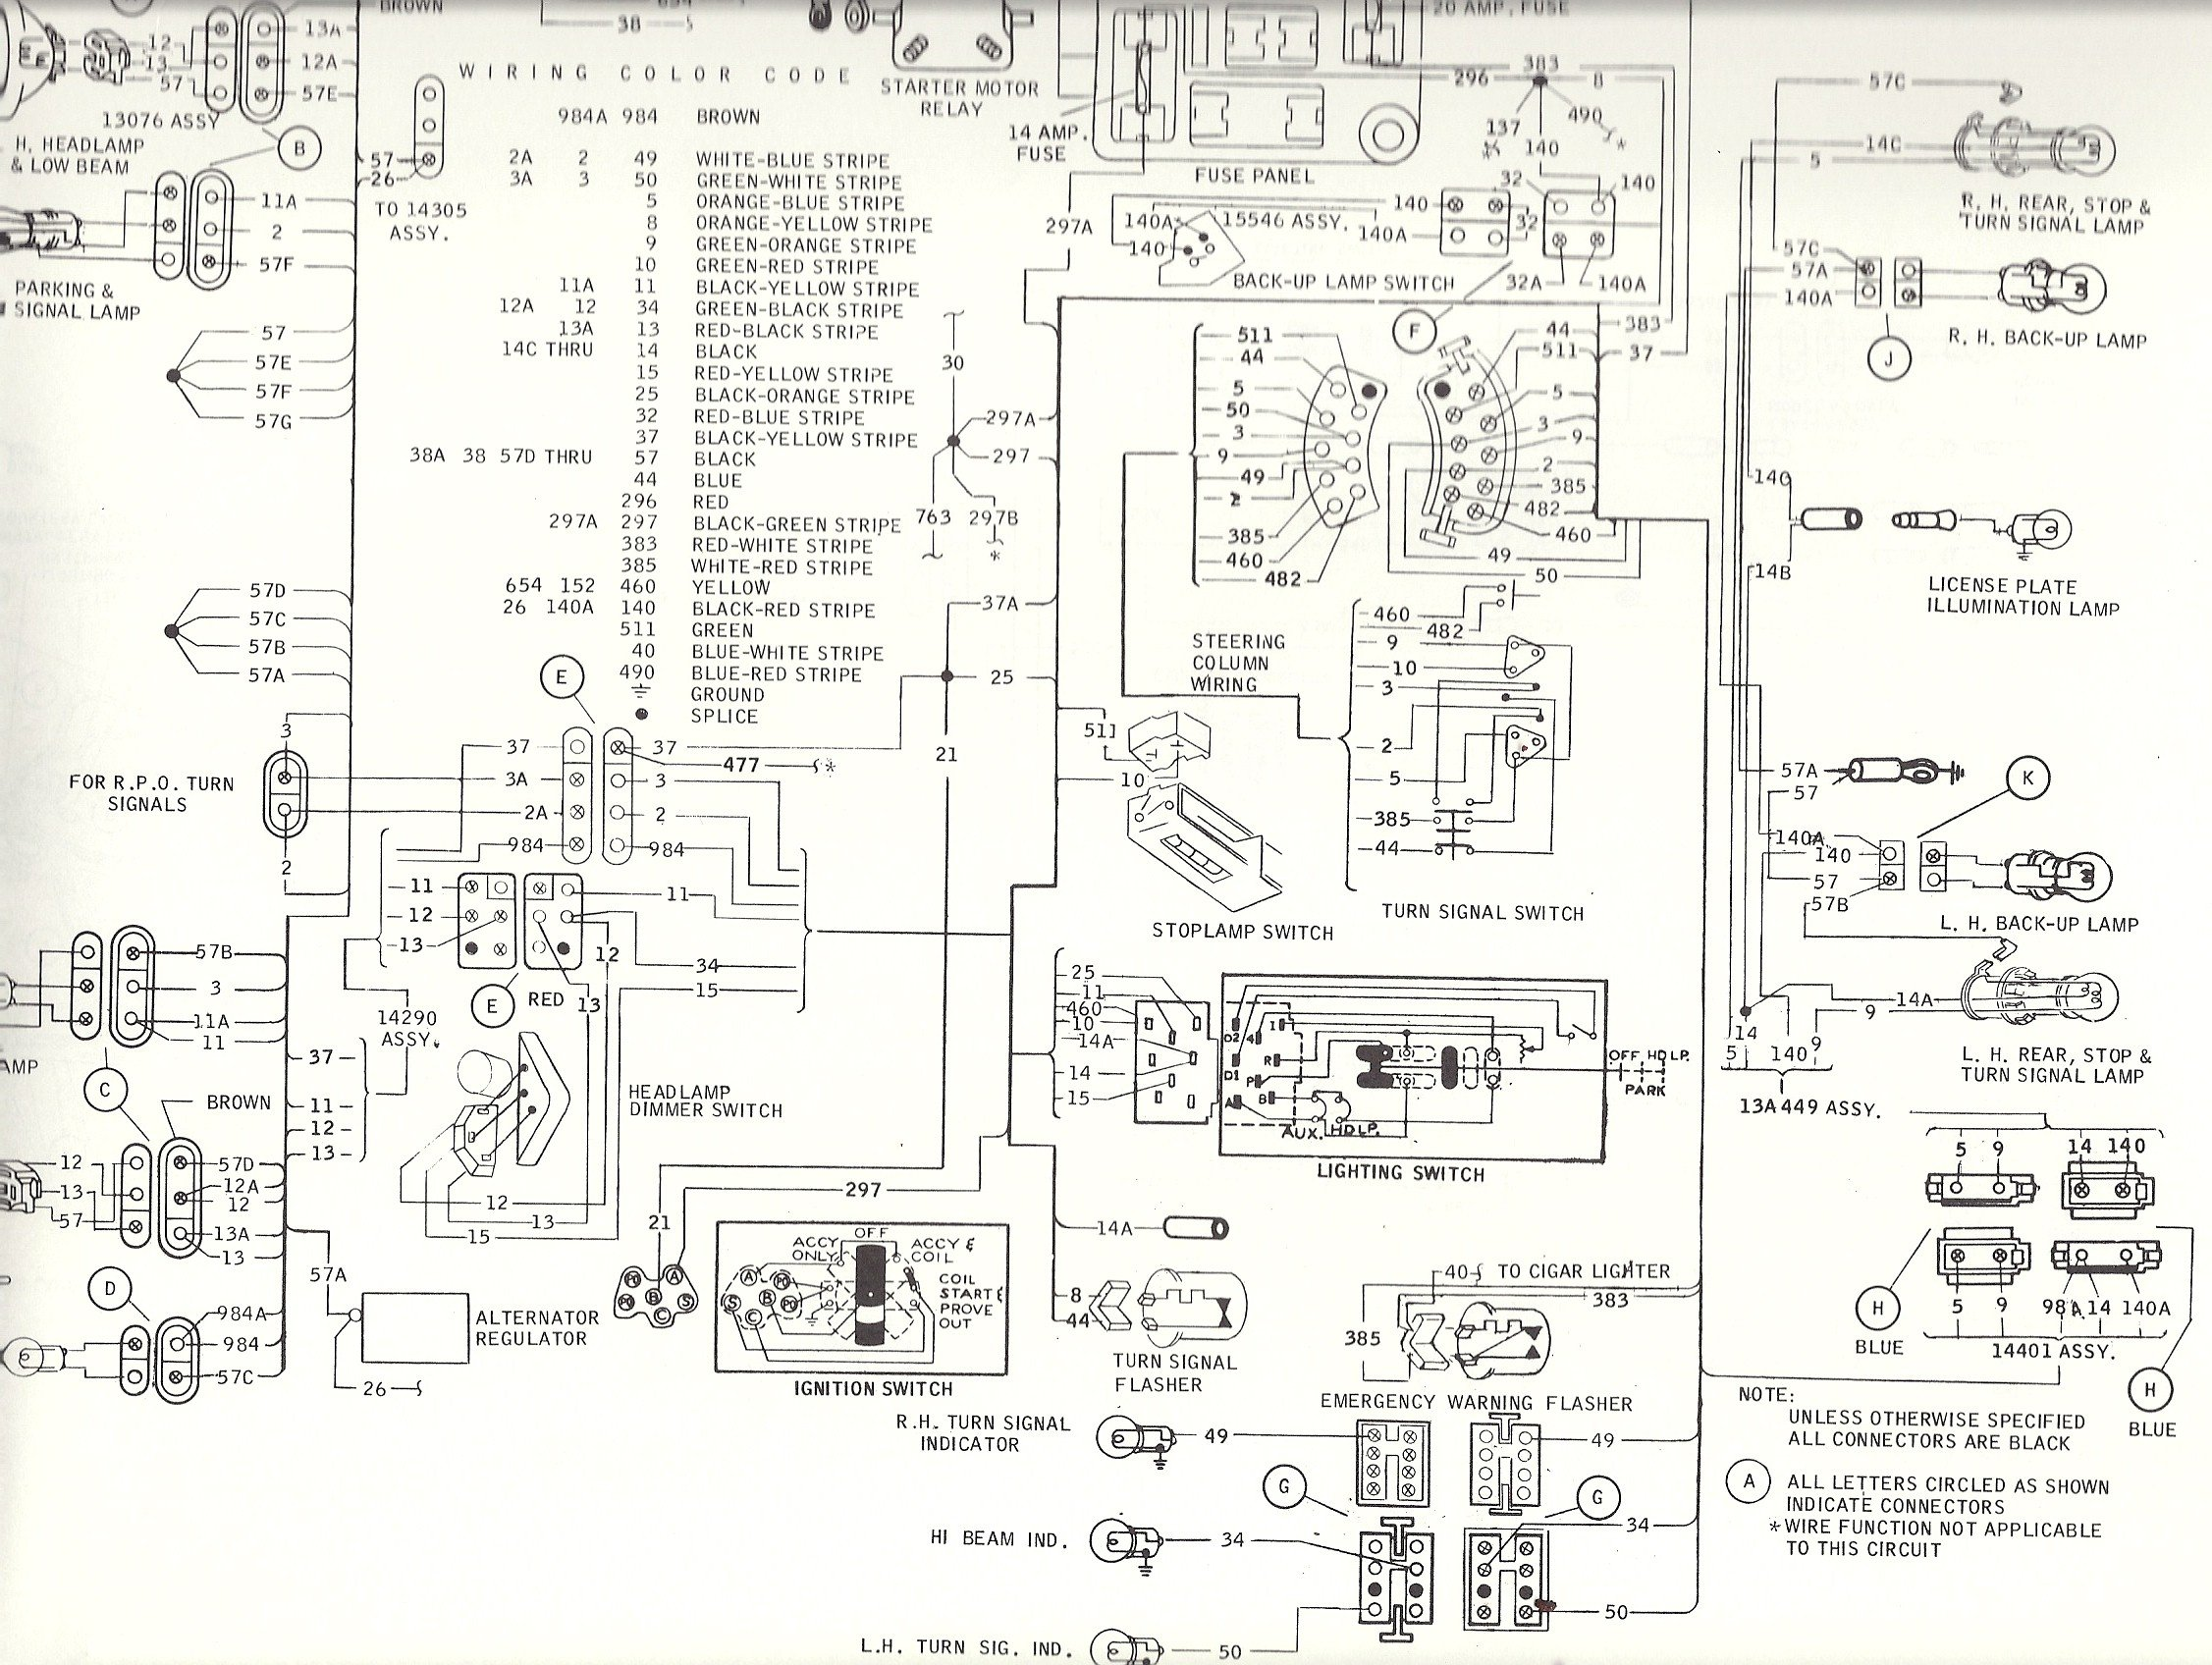 1989 mustang turn signal wiring diagram wiring diagram 1968 mustang turn signal switch wiring